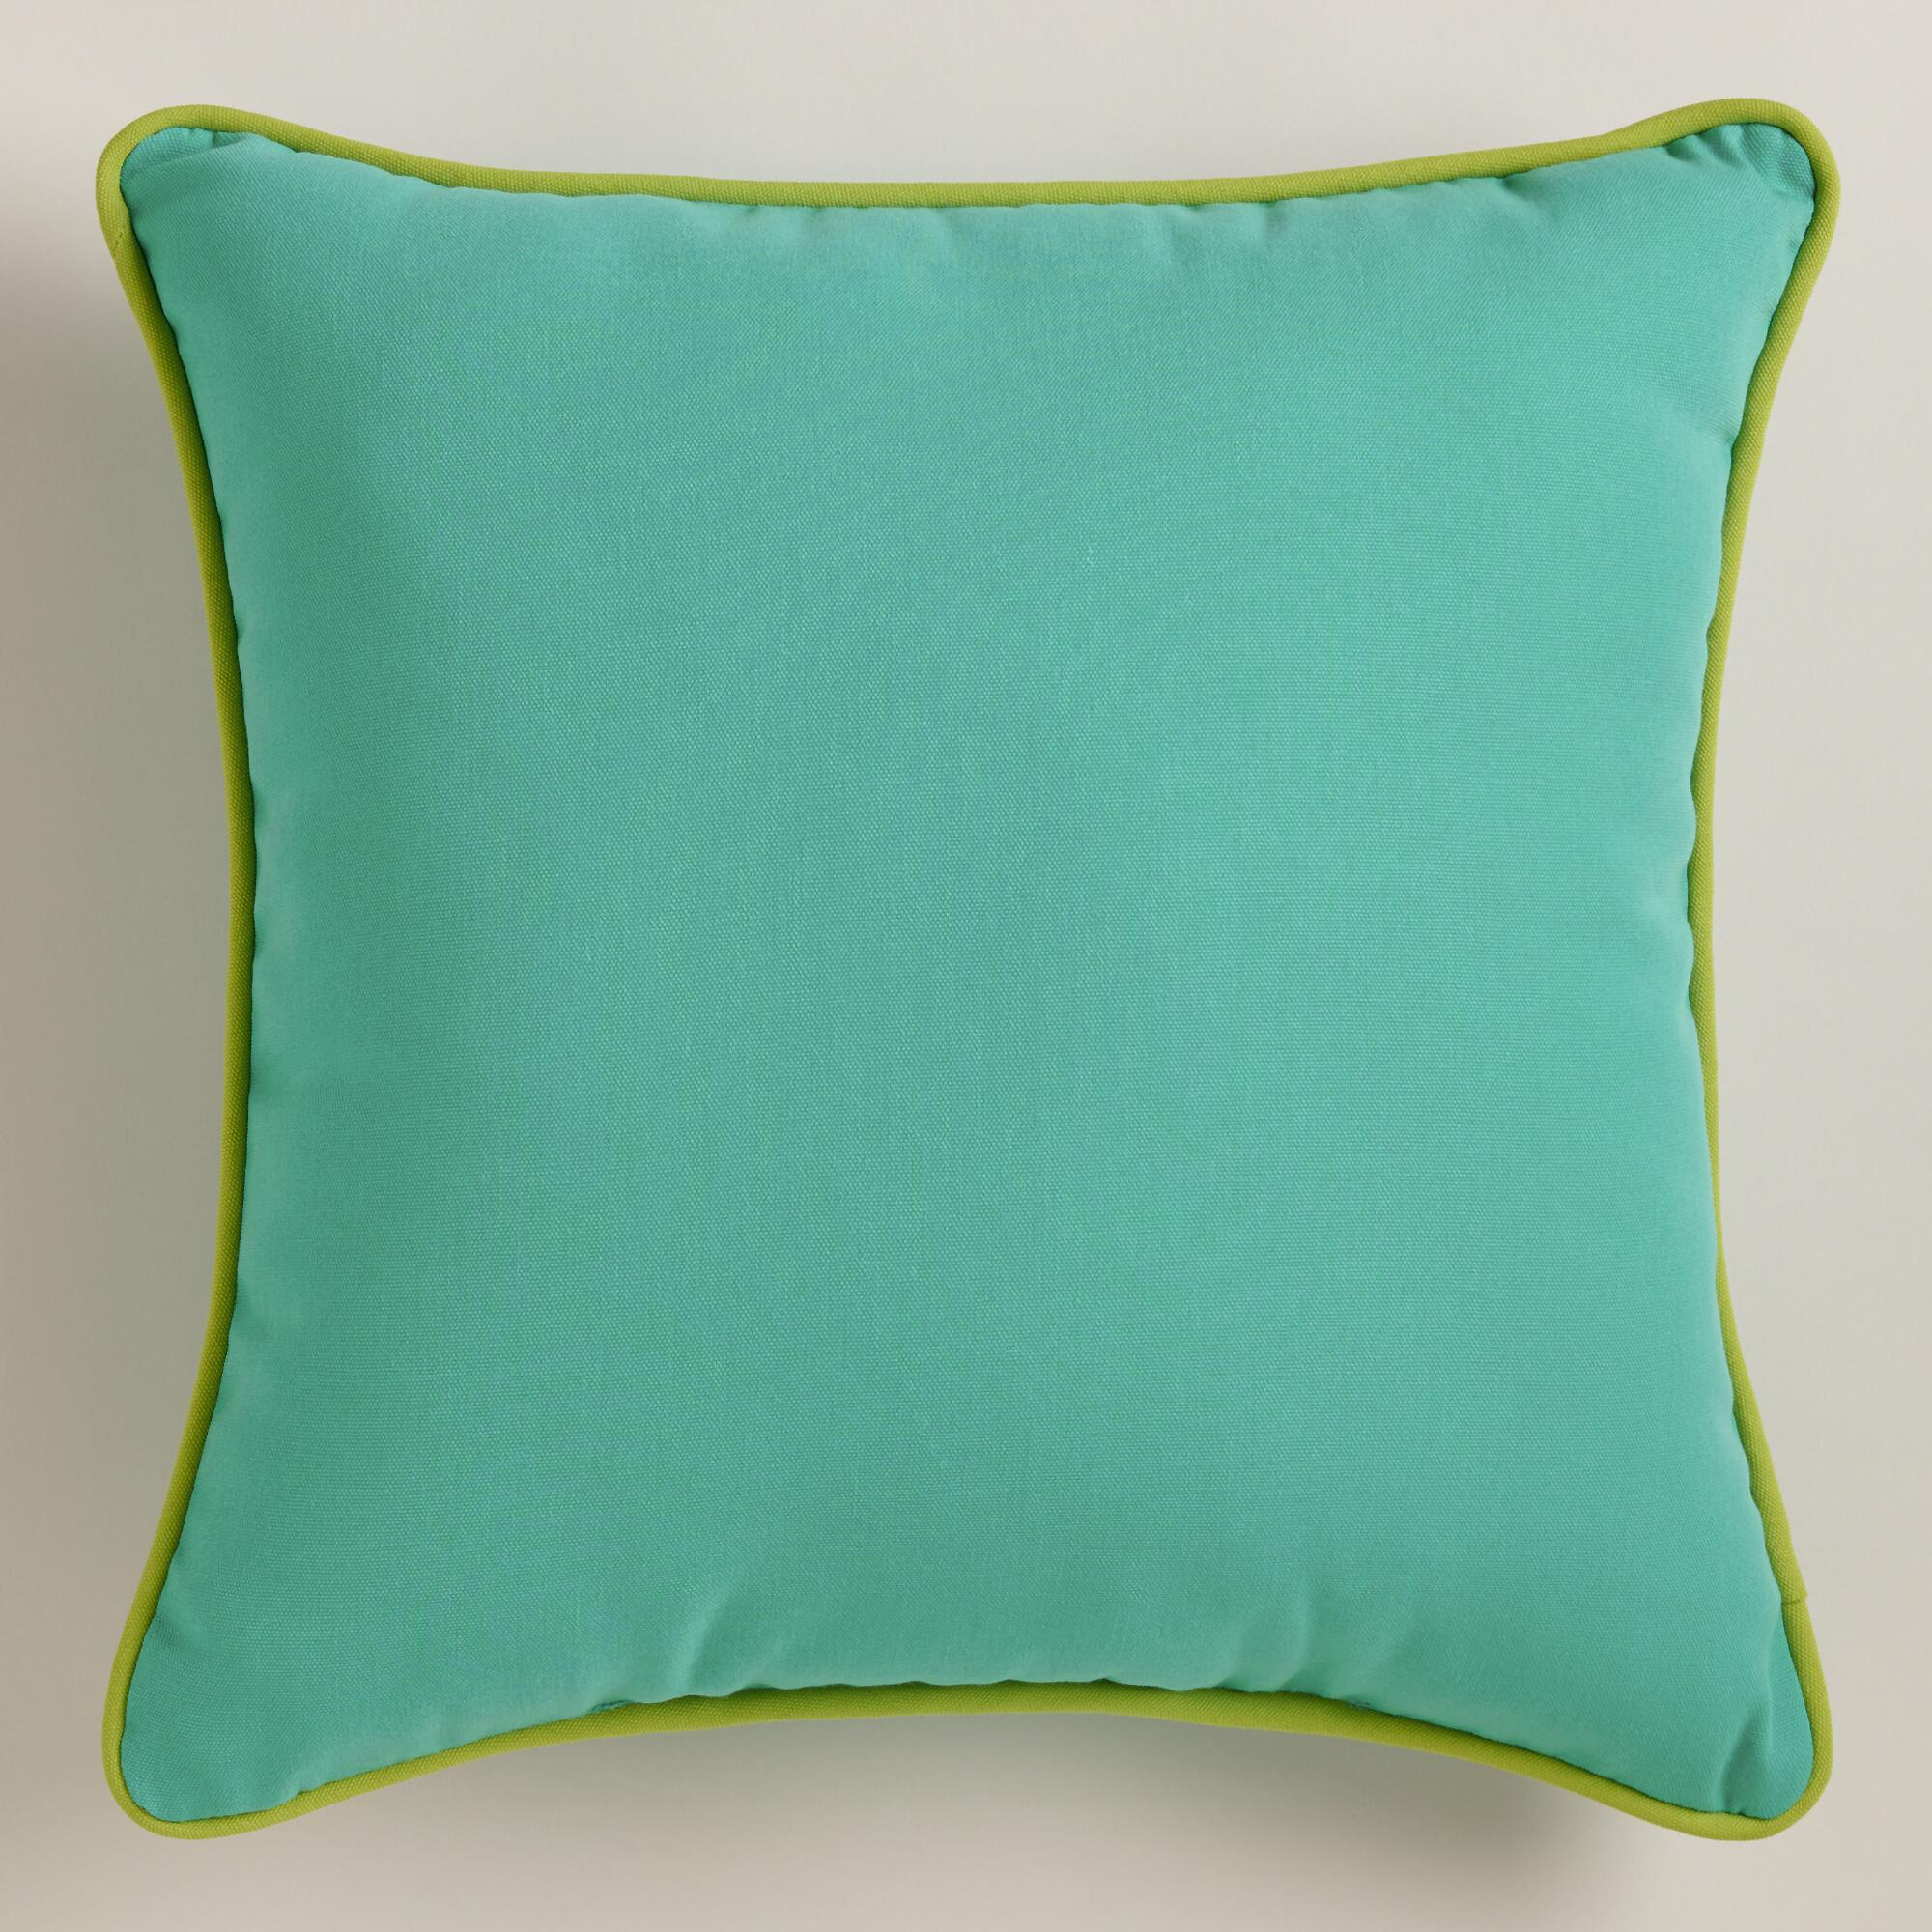 Aqua Outdoor Throw Pillow with Piping World Market